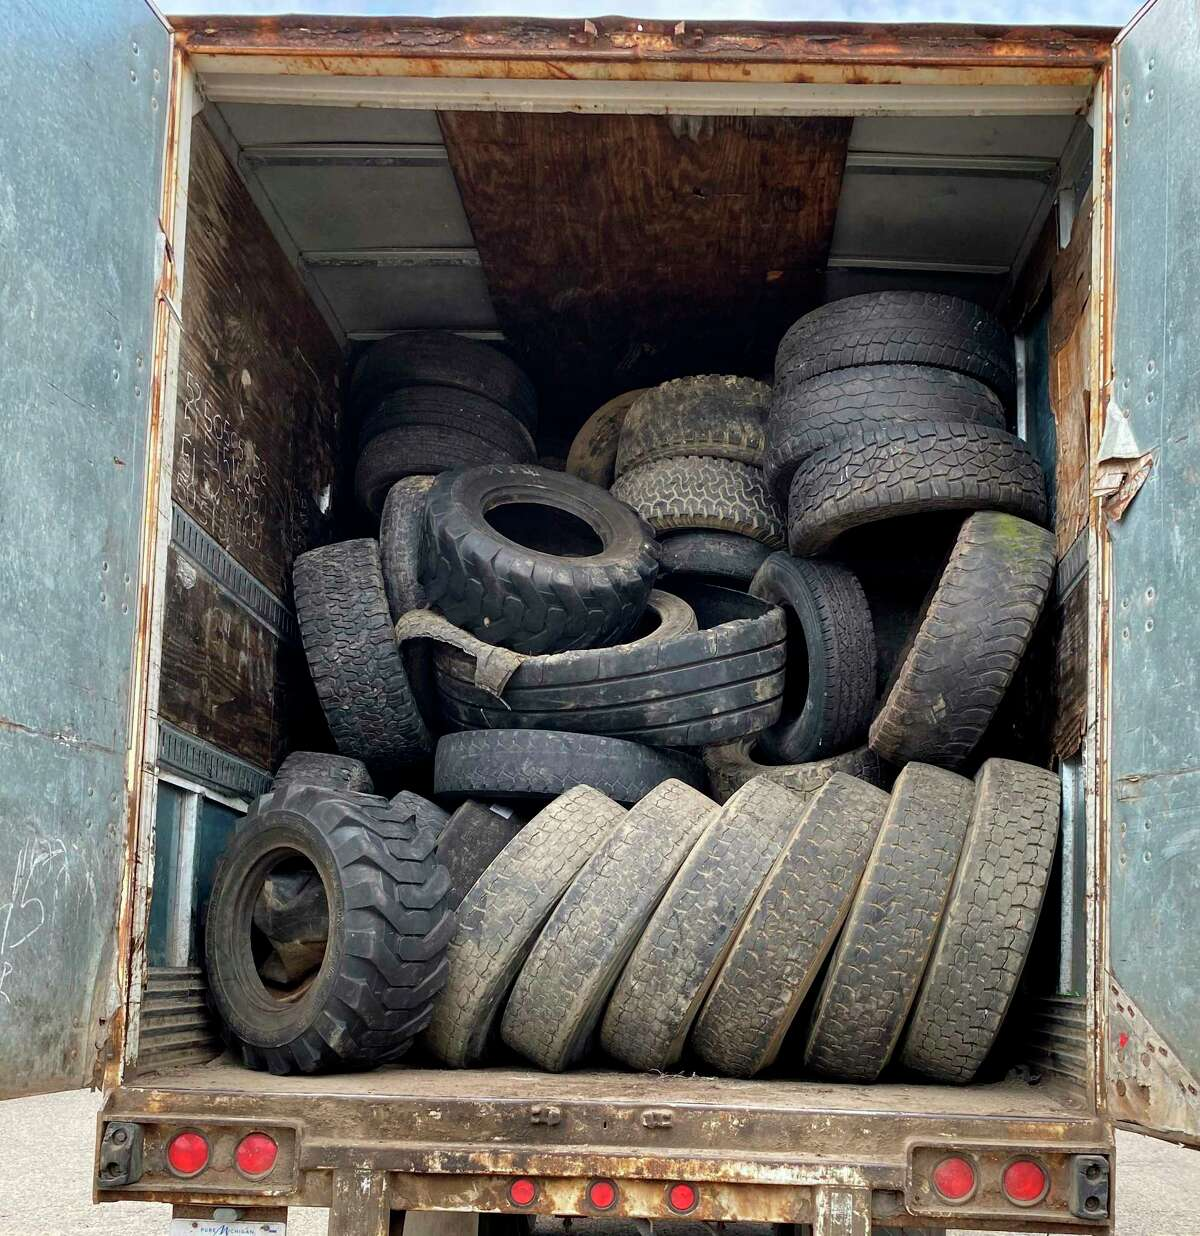 A semi trailer is full of scrap tires collected during the Huron Conservation District's scrap tire drive. (Courtesy Photo)